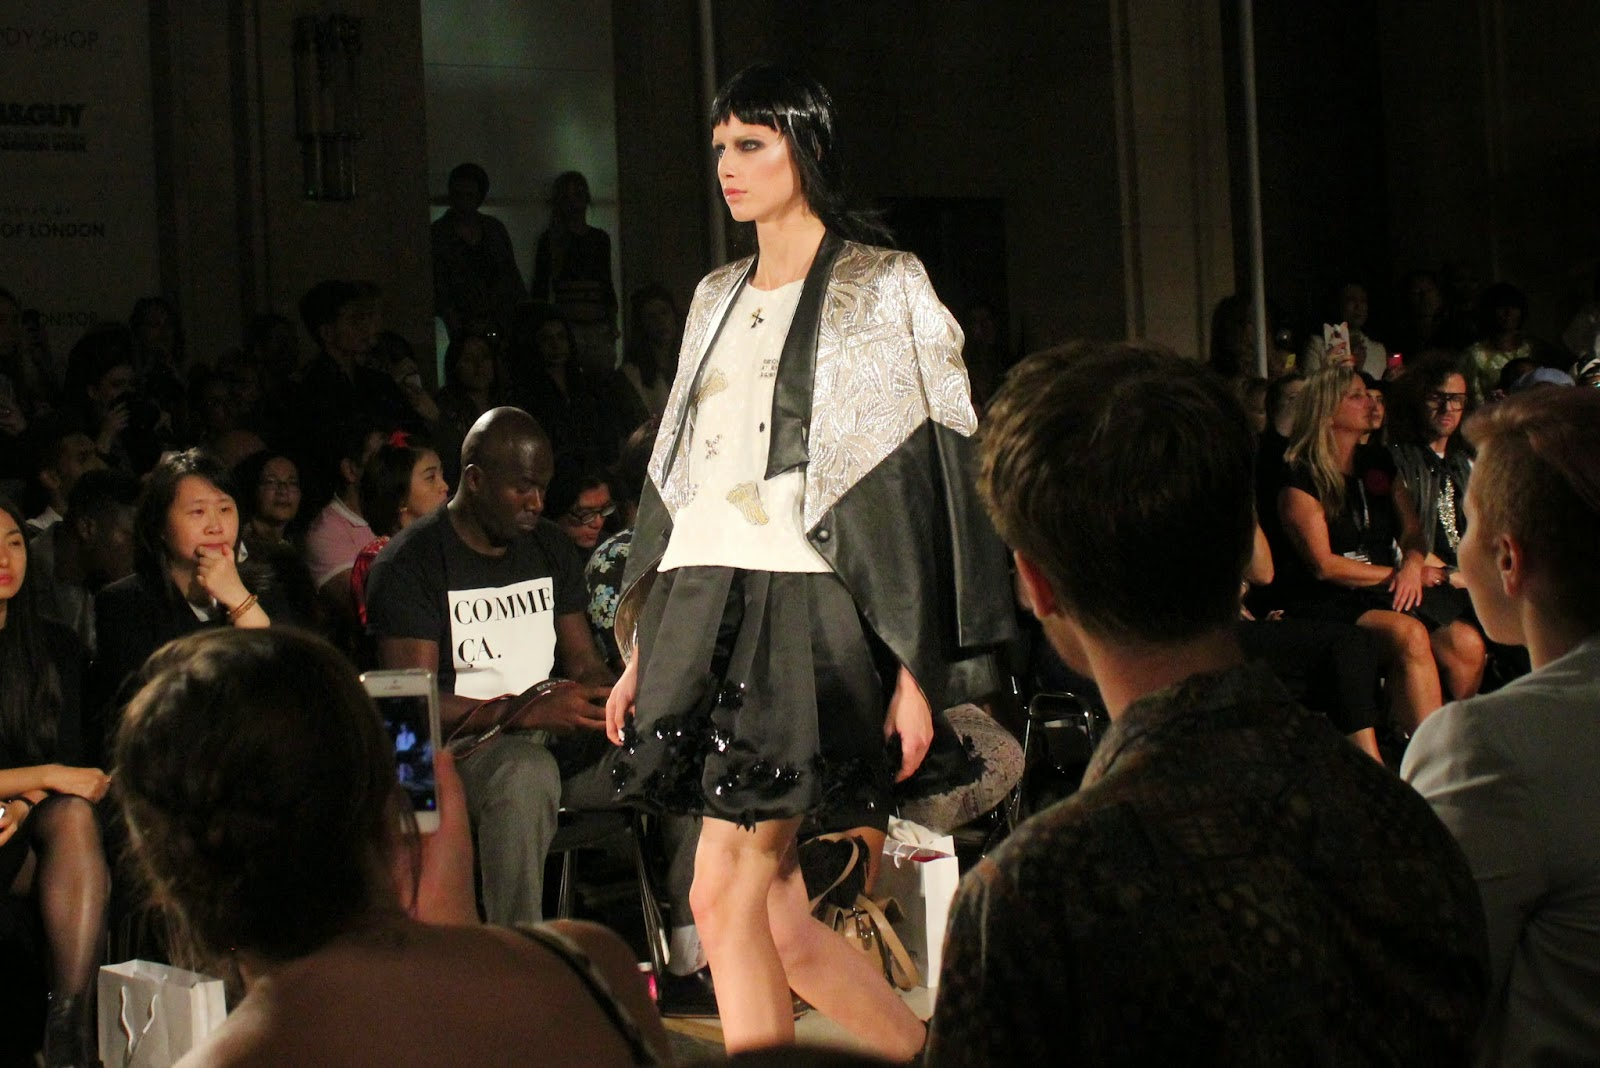 london-fashion-week-2014-lfw-spring-summer-2015-blogger-fashion-Dora-Abodi-catwalk-models-freemasons hall-fashion-scout-top-skirt-jacket-blazer